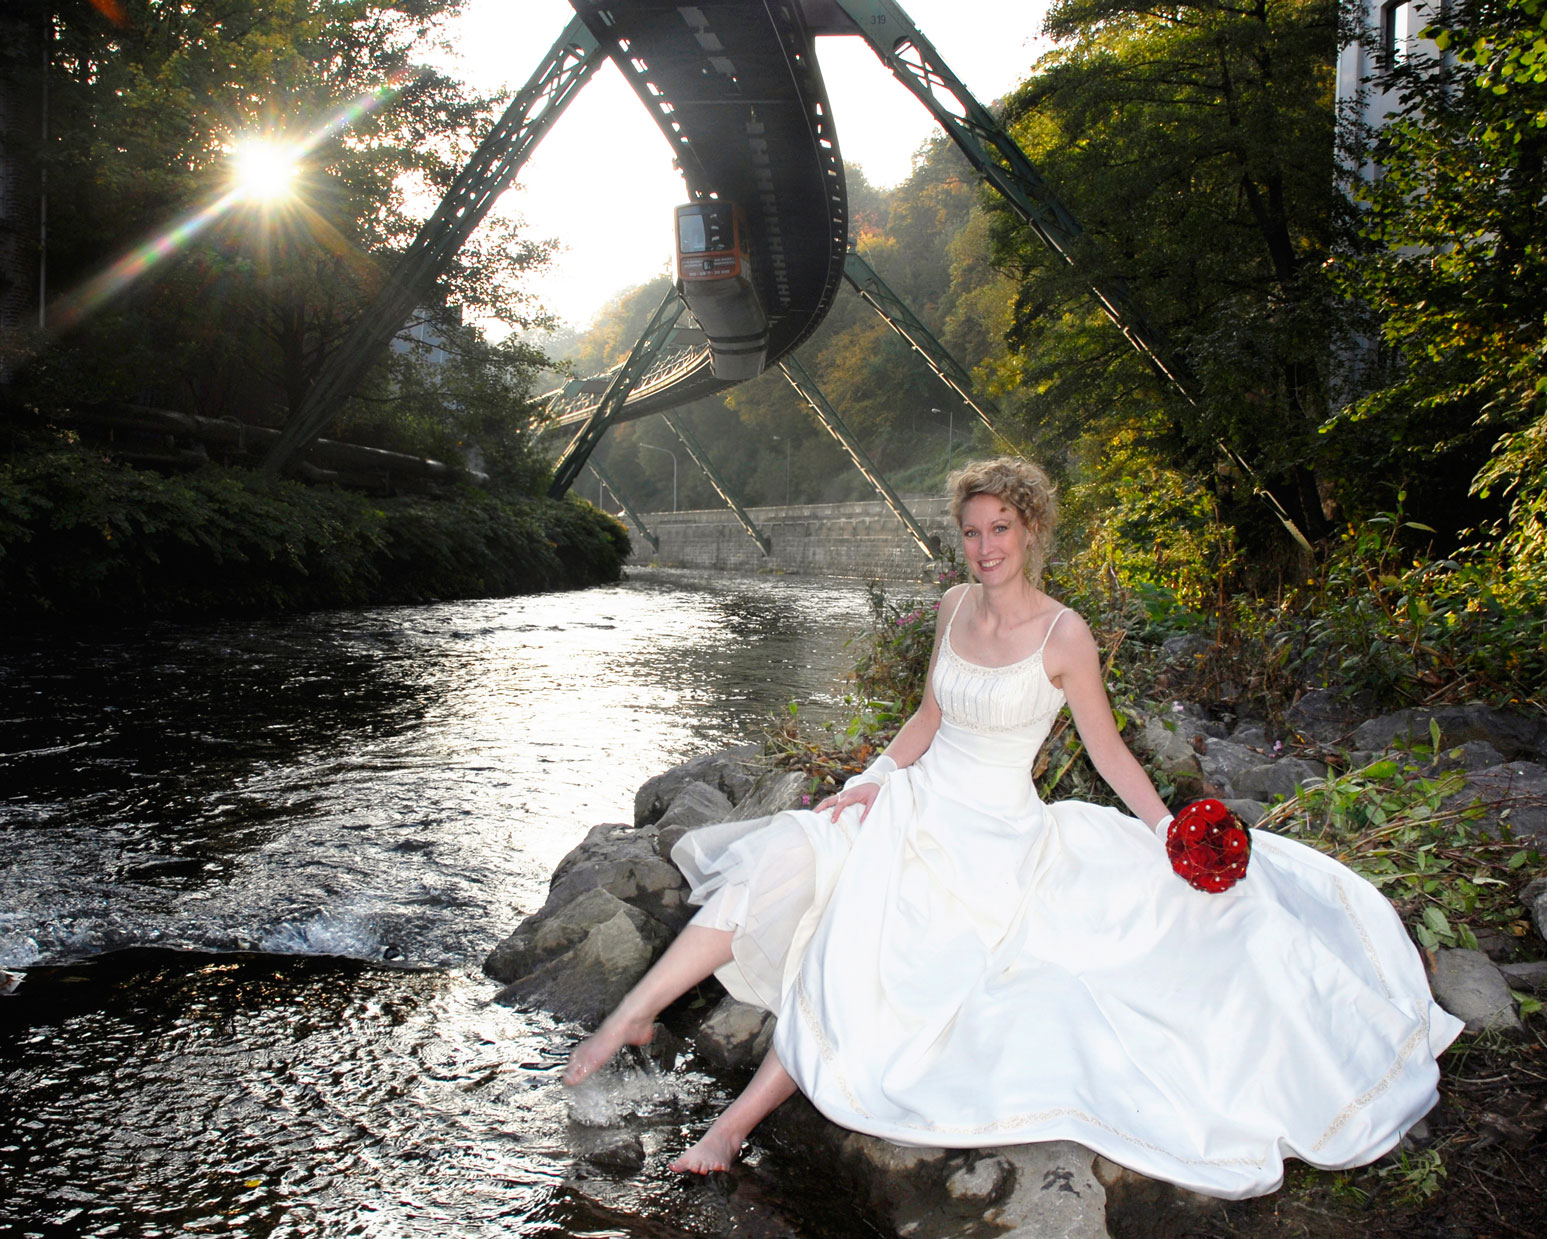 hochzeitsfotos-trash-the-dress-fotografie-andrea-rompa-15